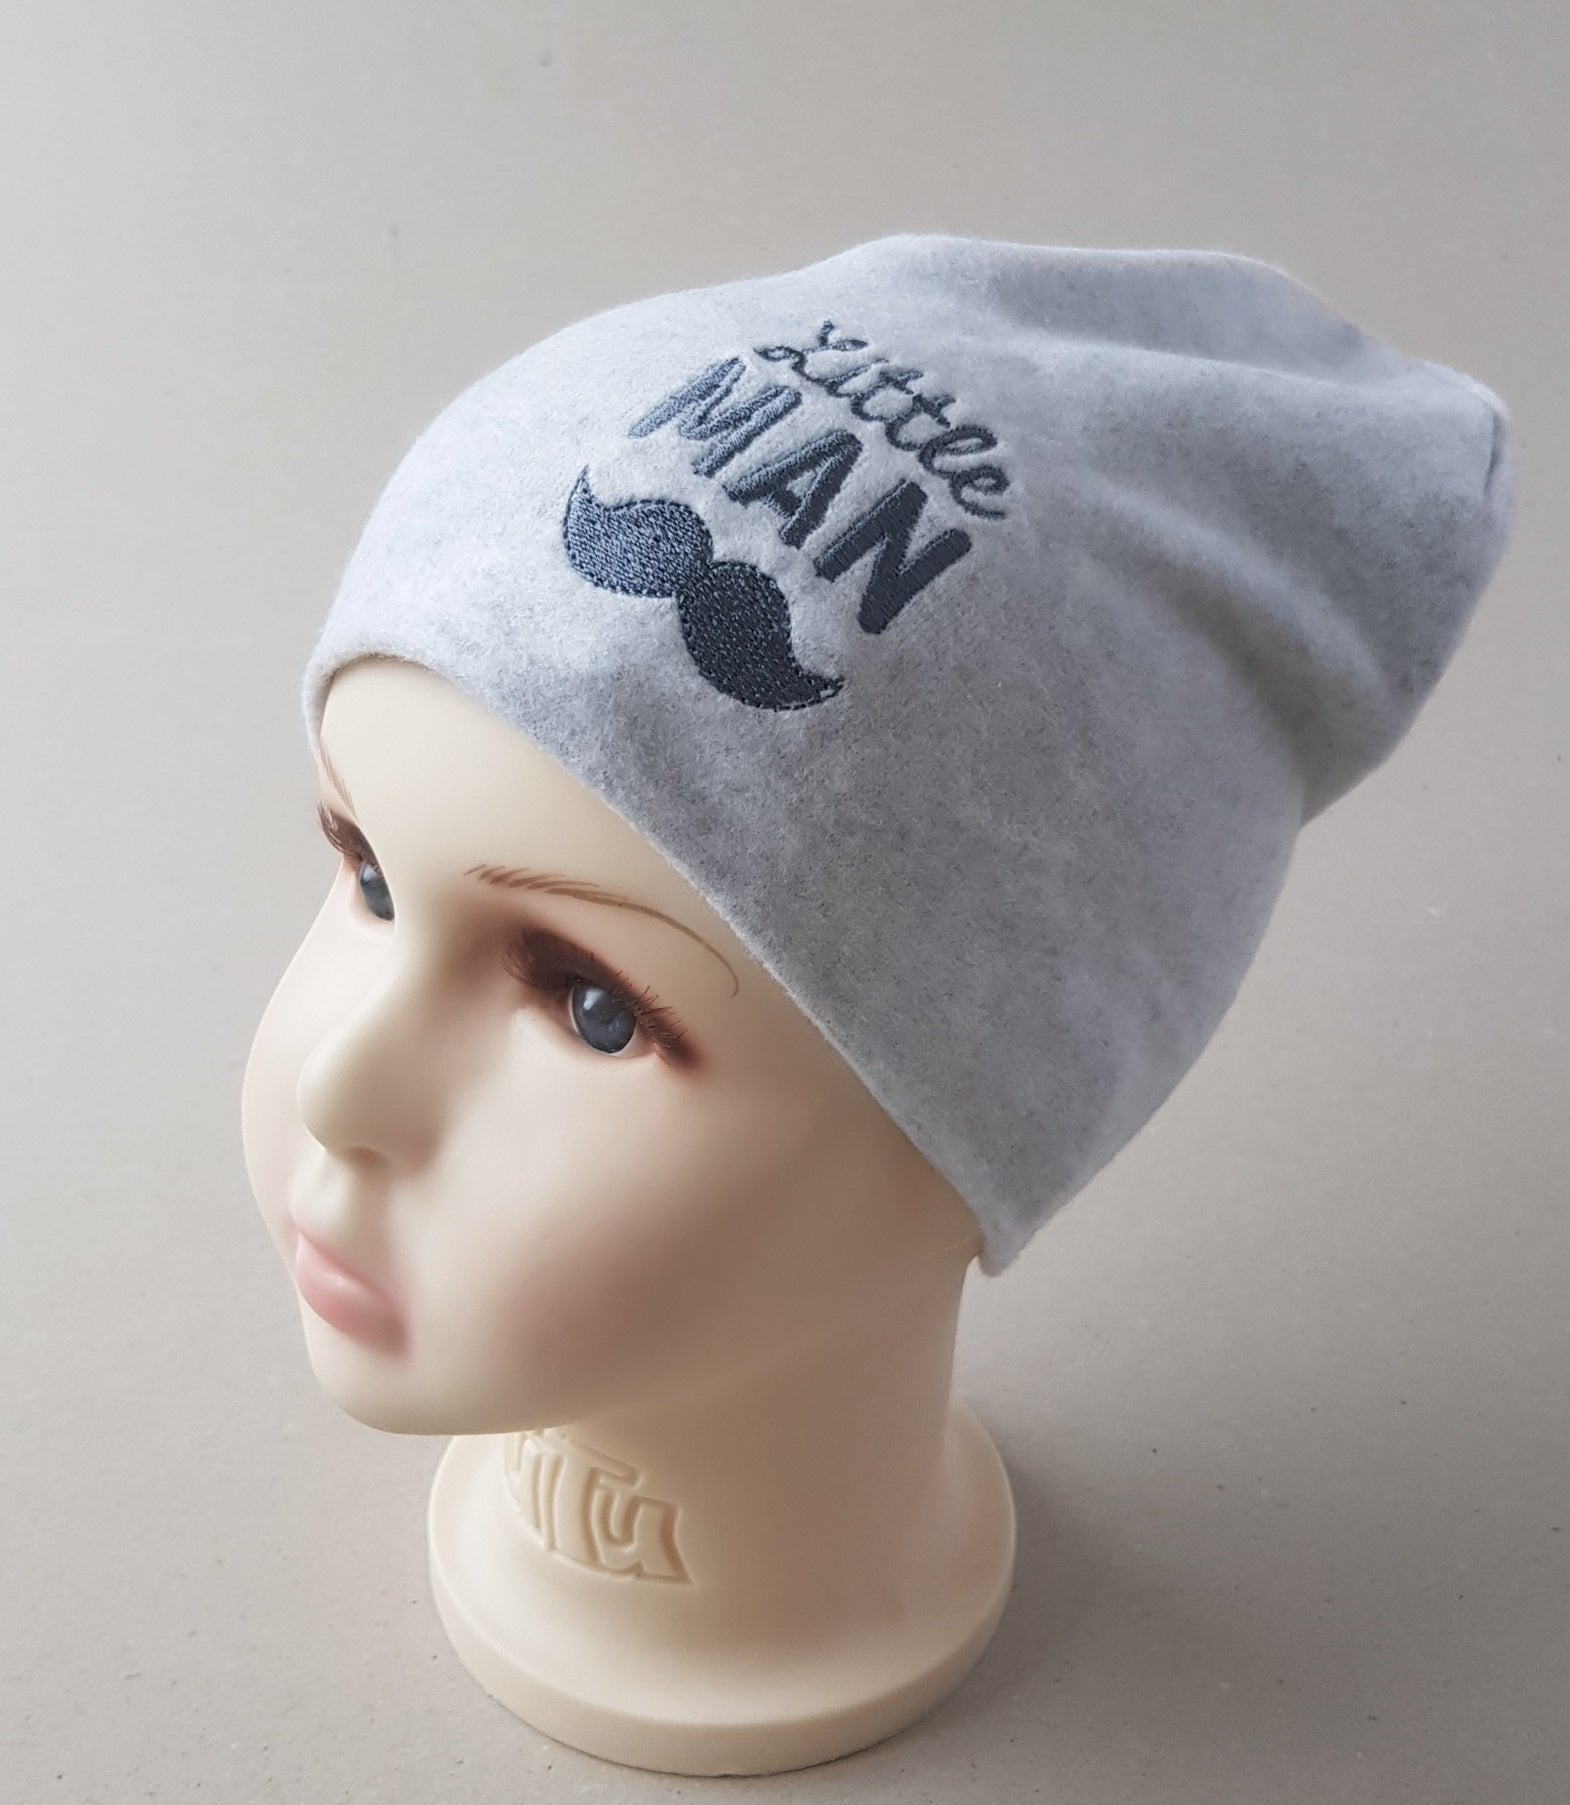 Beanie hat for boys Little MAN sizes 42, 44, 46, 48, 50 (from 4 months up to 4  years old and more.)